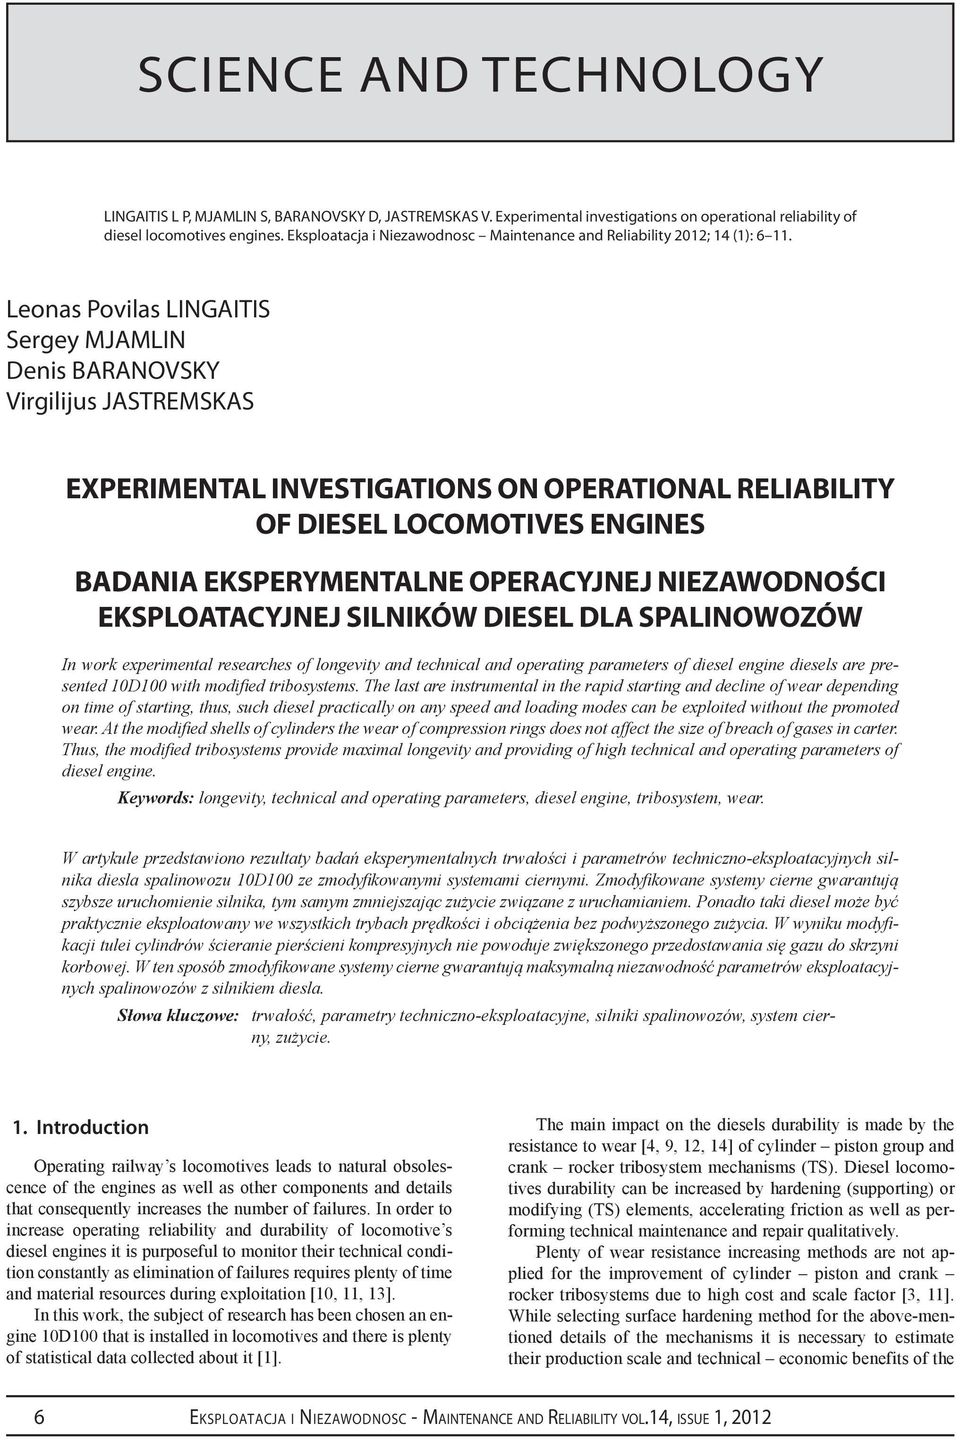 Leonas Povilas LINGAITIS Sergey MJAMLIN Denis BARANOVSKY Virgilijus JASTREMSKAS Experimental Investigations on Operational Reliability of Diesel Locomotives Engines Badania eksperymentalne